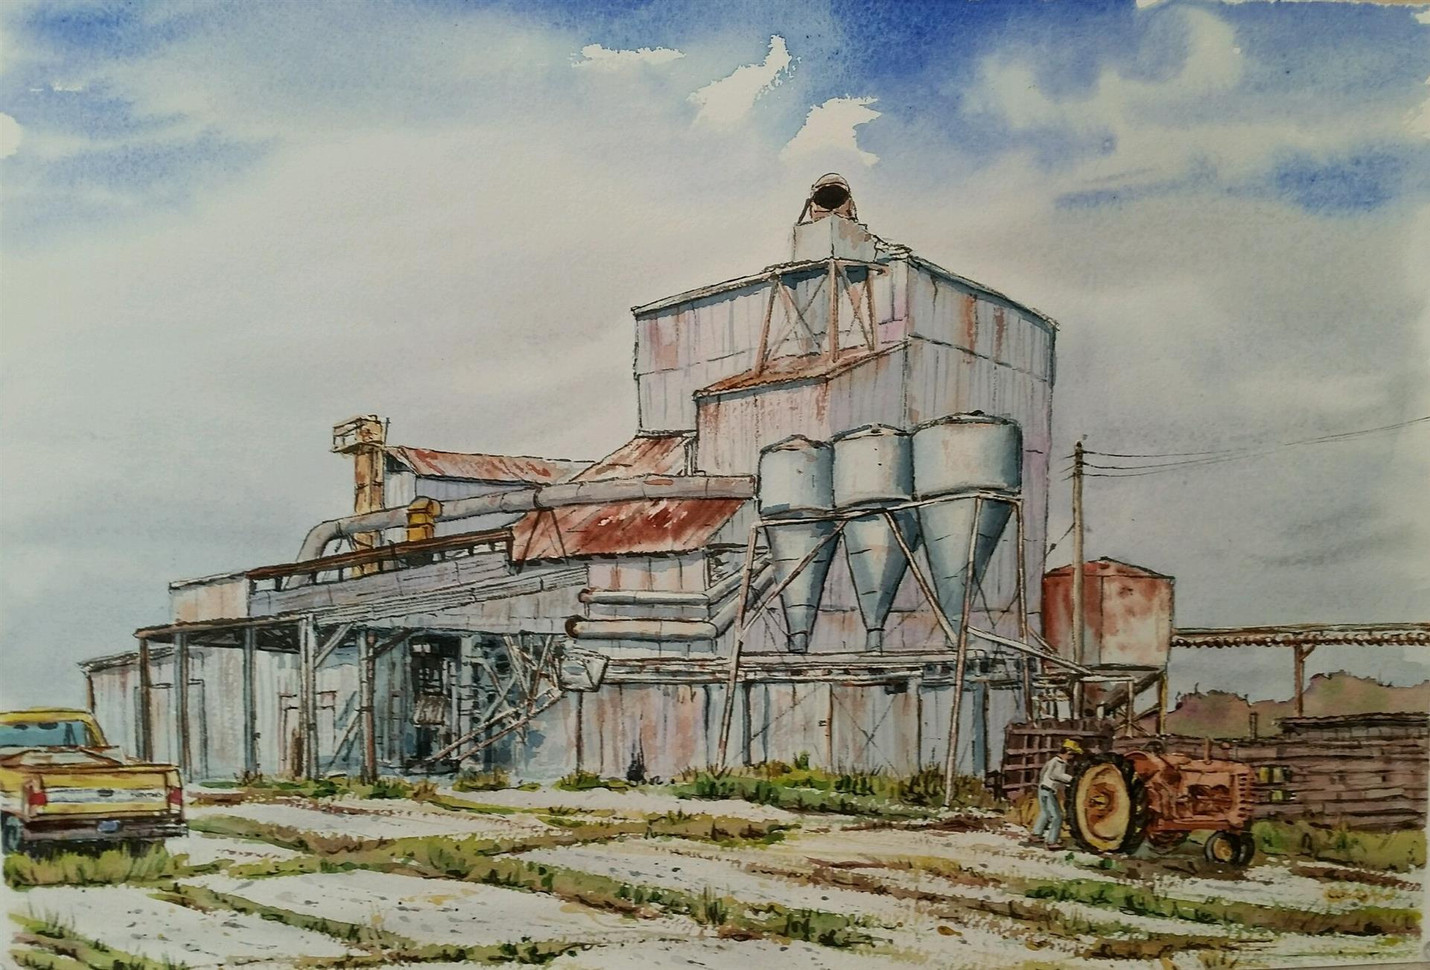 "Mark Selby (Los Osos), Retired Hullers, 2019 Watercolor, 14.75"" x 21.75"" $350"